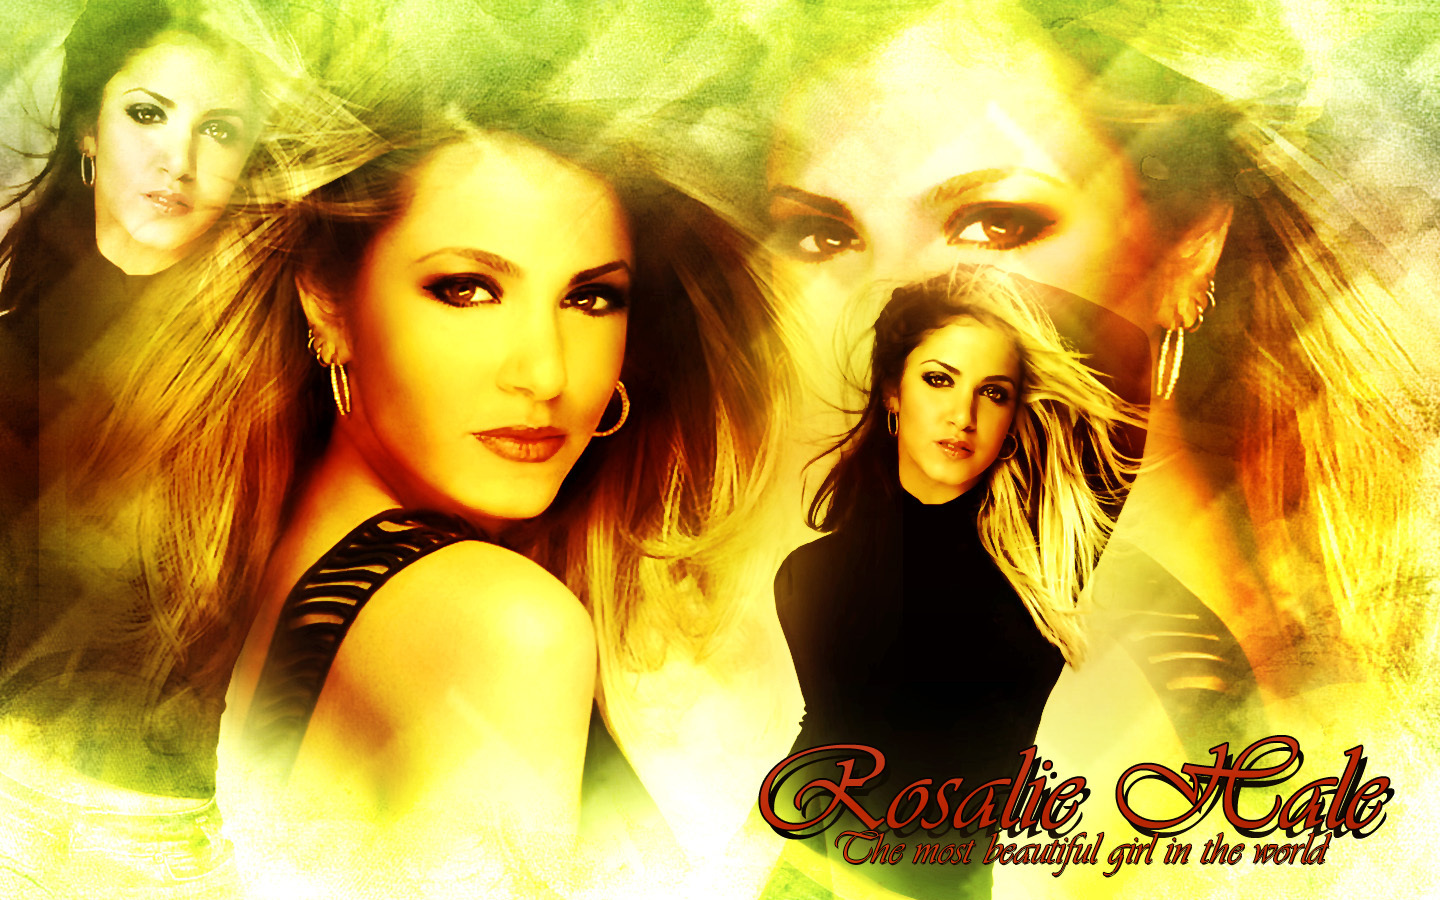 Rosalie Hale - Gallery Colection